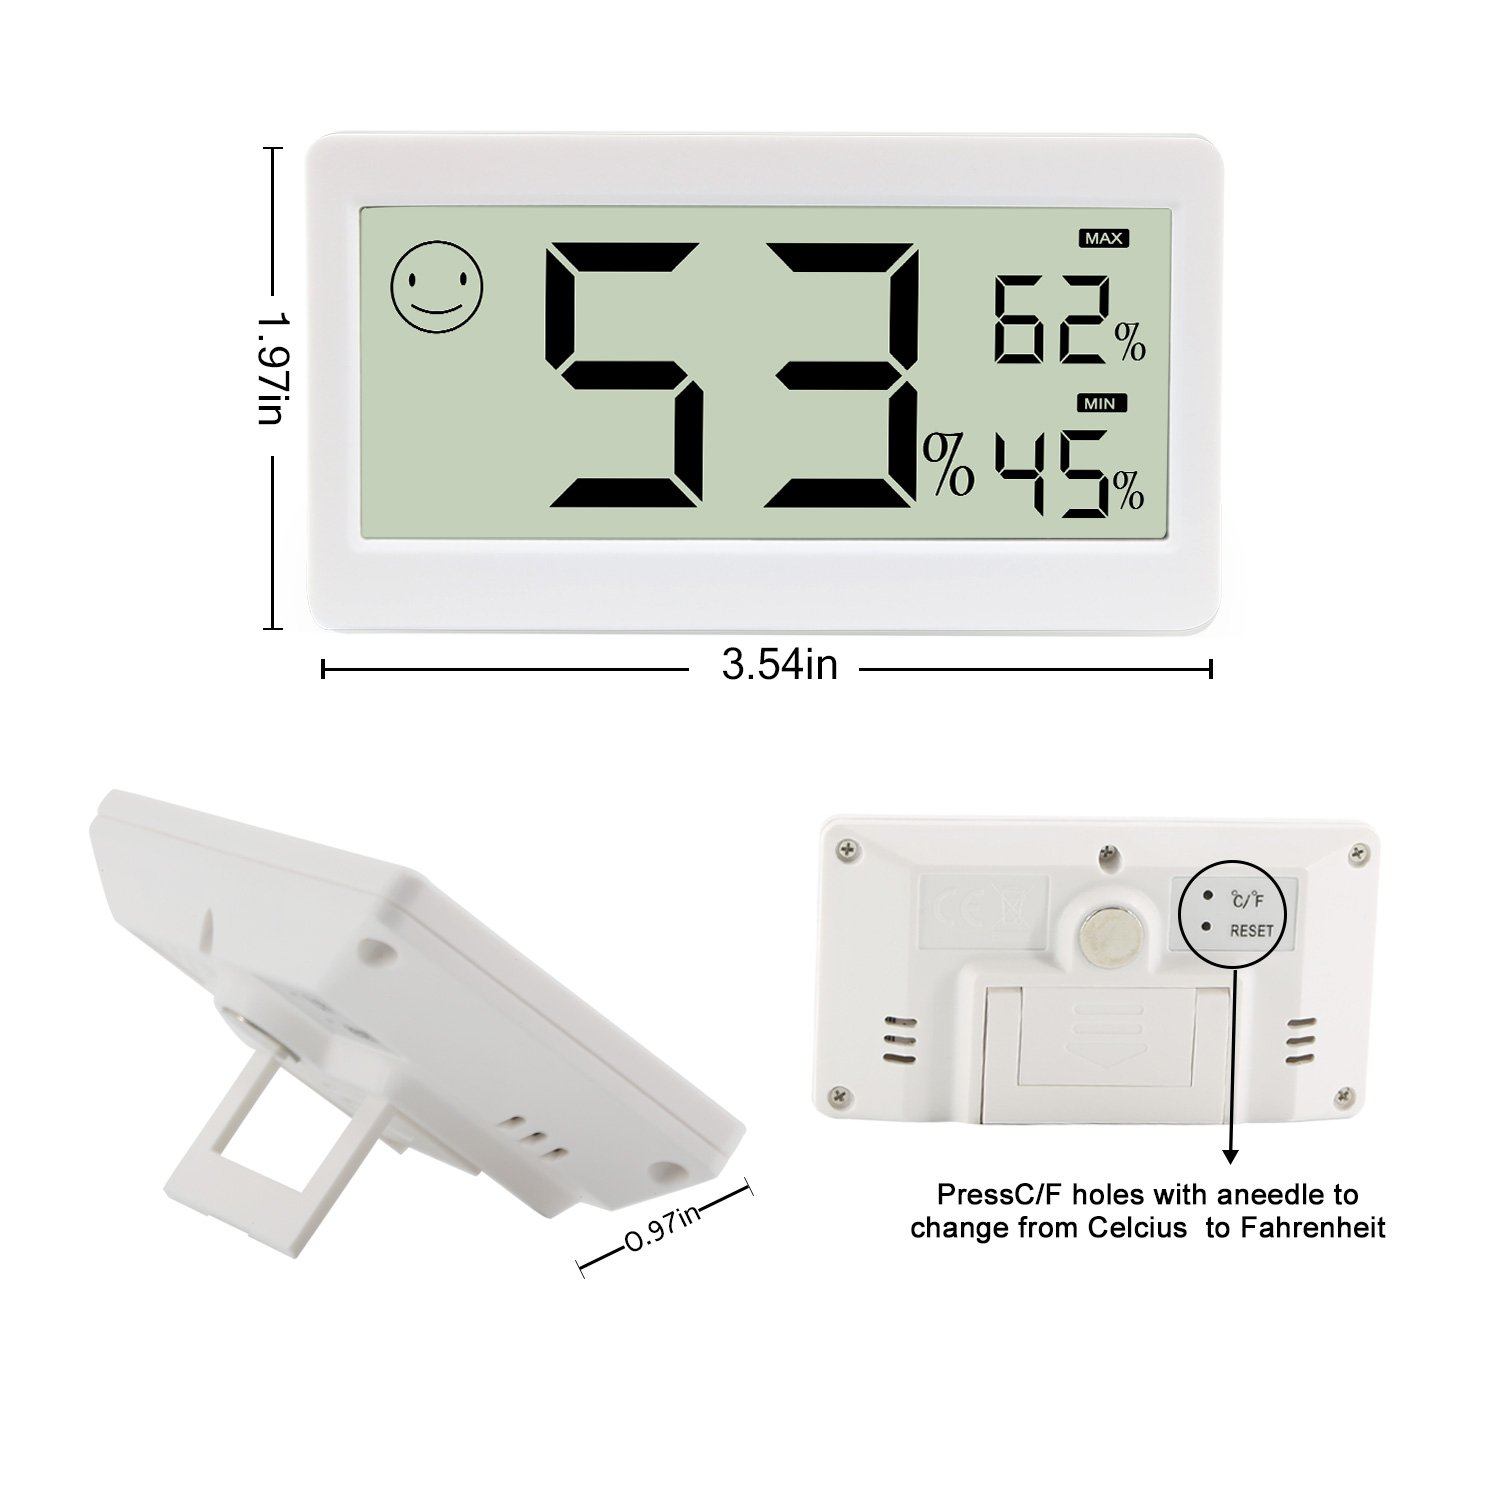 ChenYuTe Digital Thermometer Hygrometer,Humidity Monitor Temperature Gauge 3.3 Inch LCD Display,Table Standing,Magnet Attaching Household,Kids Home,Kitchen,etc (2 Pack) by ChenYuTe